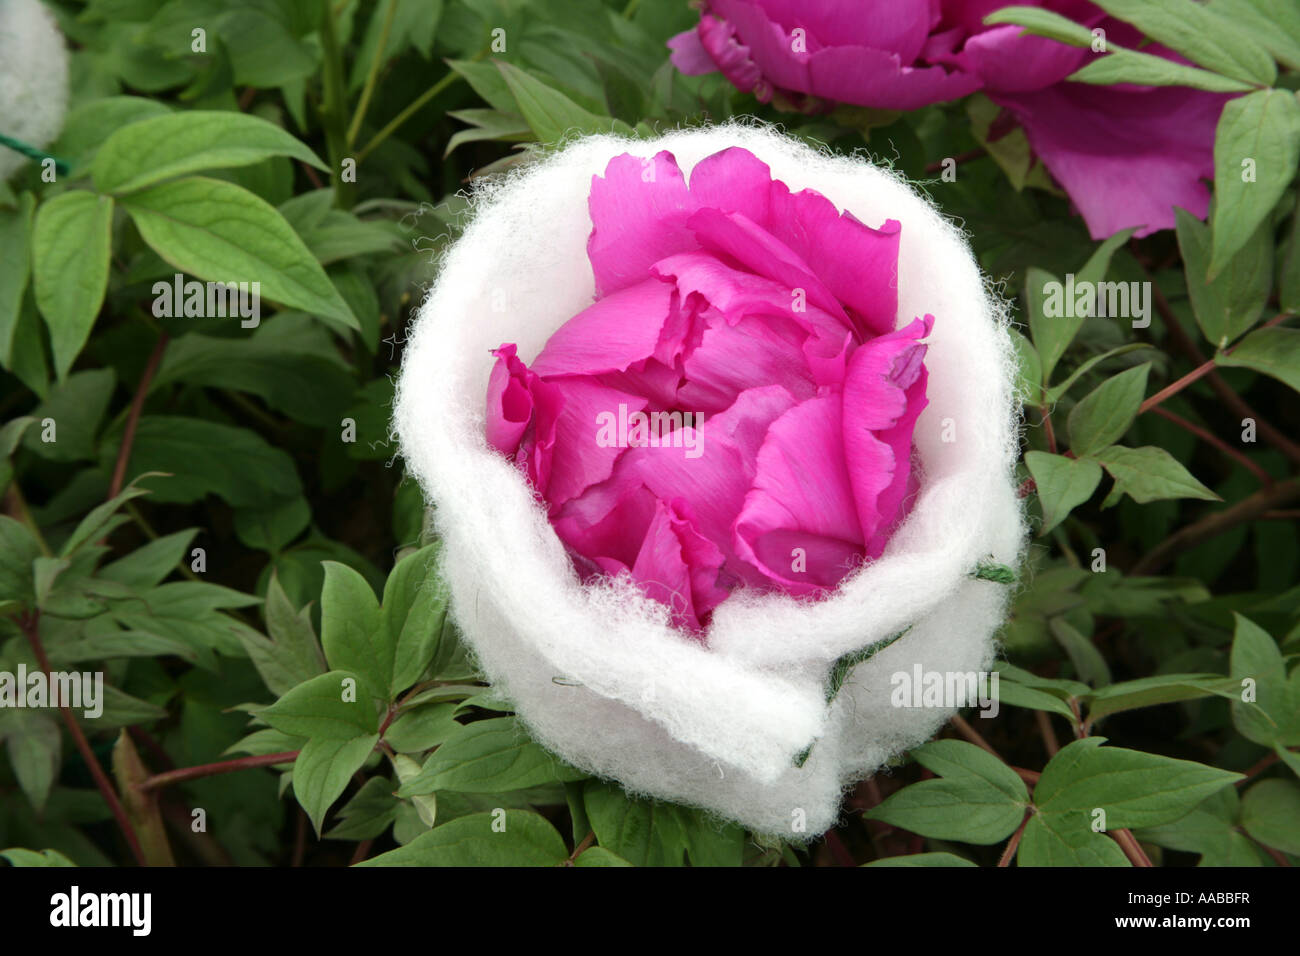 Paeonia Cardinal Vaughan wrapped in protective cotton wool prior to the Chelsea Flower Show - Stock Image